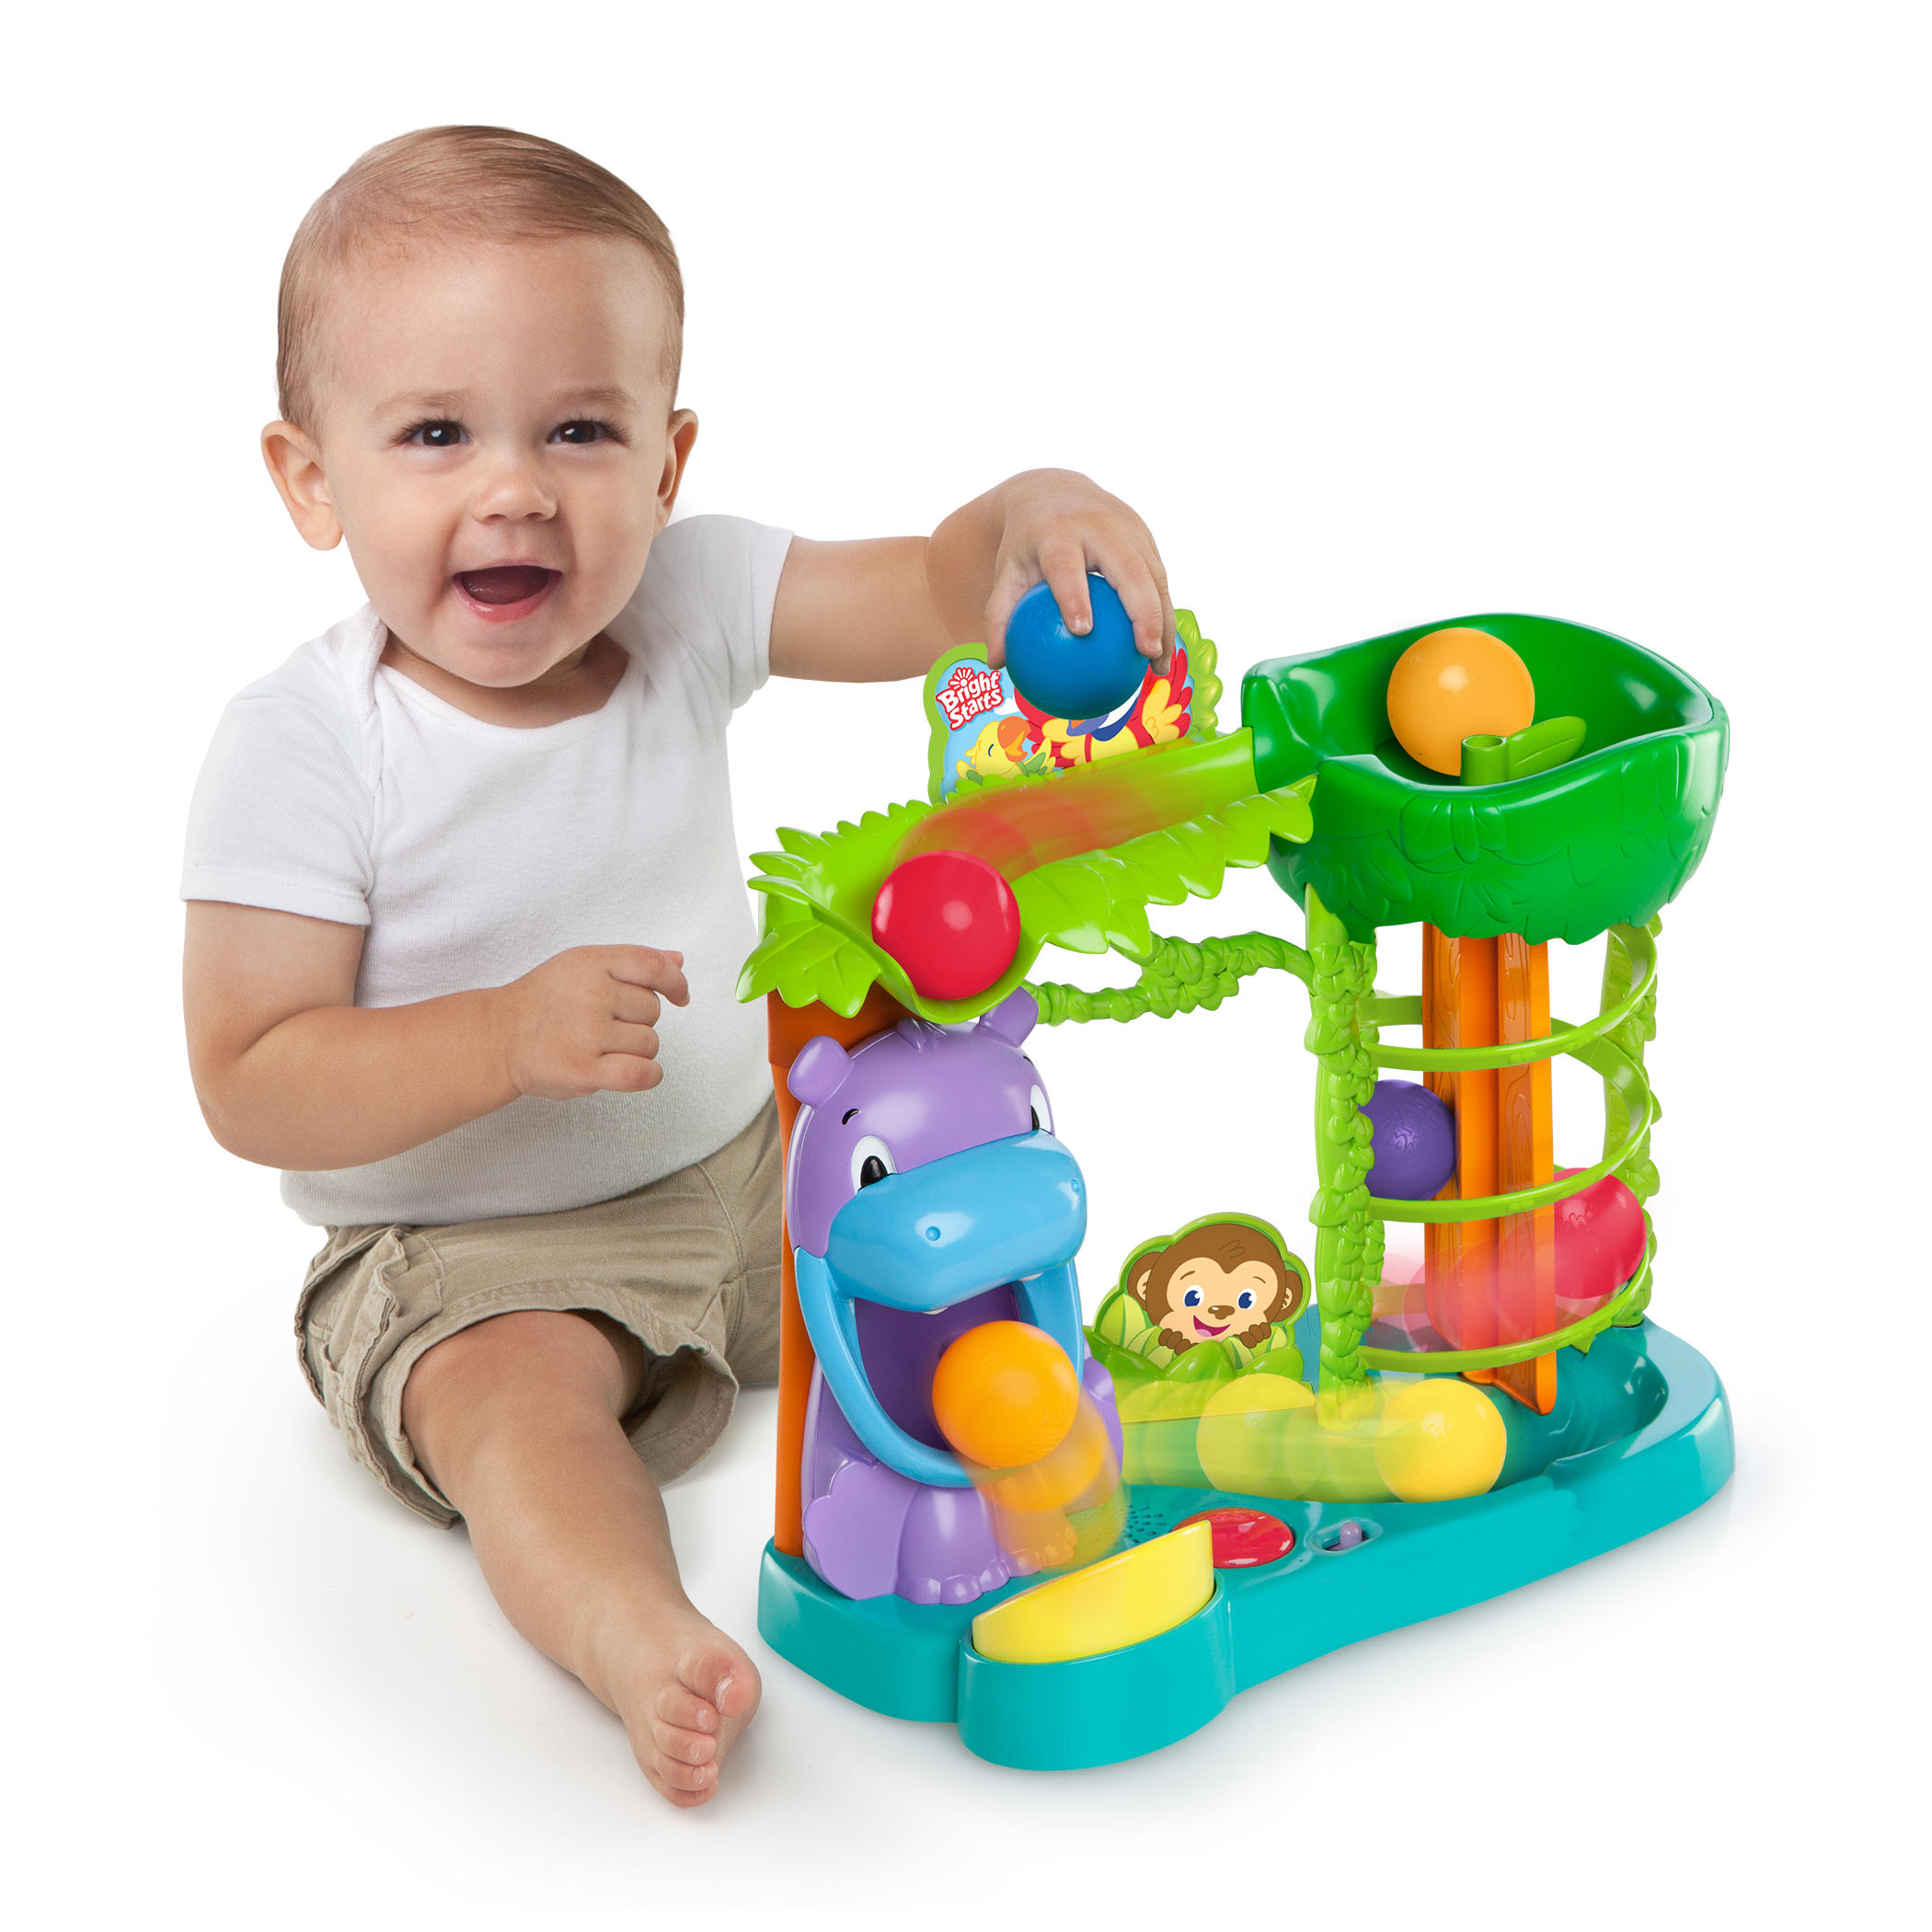 Jungle Fun Ball Climber™ Toy